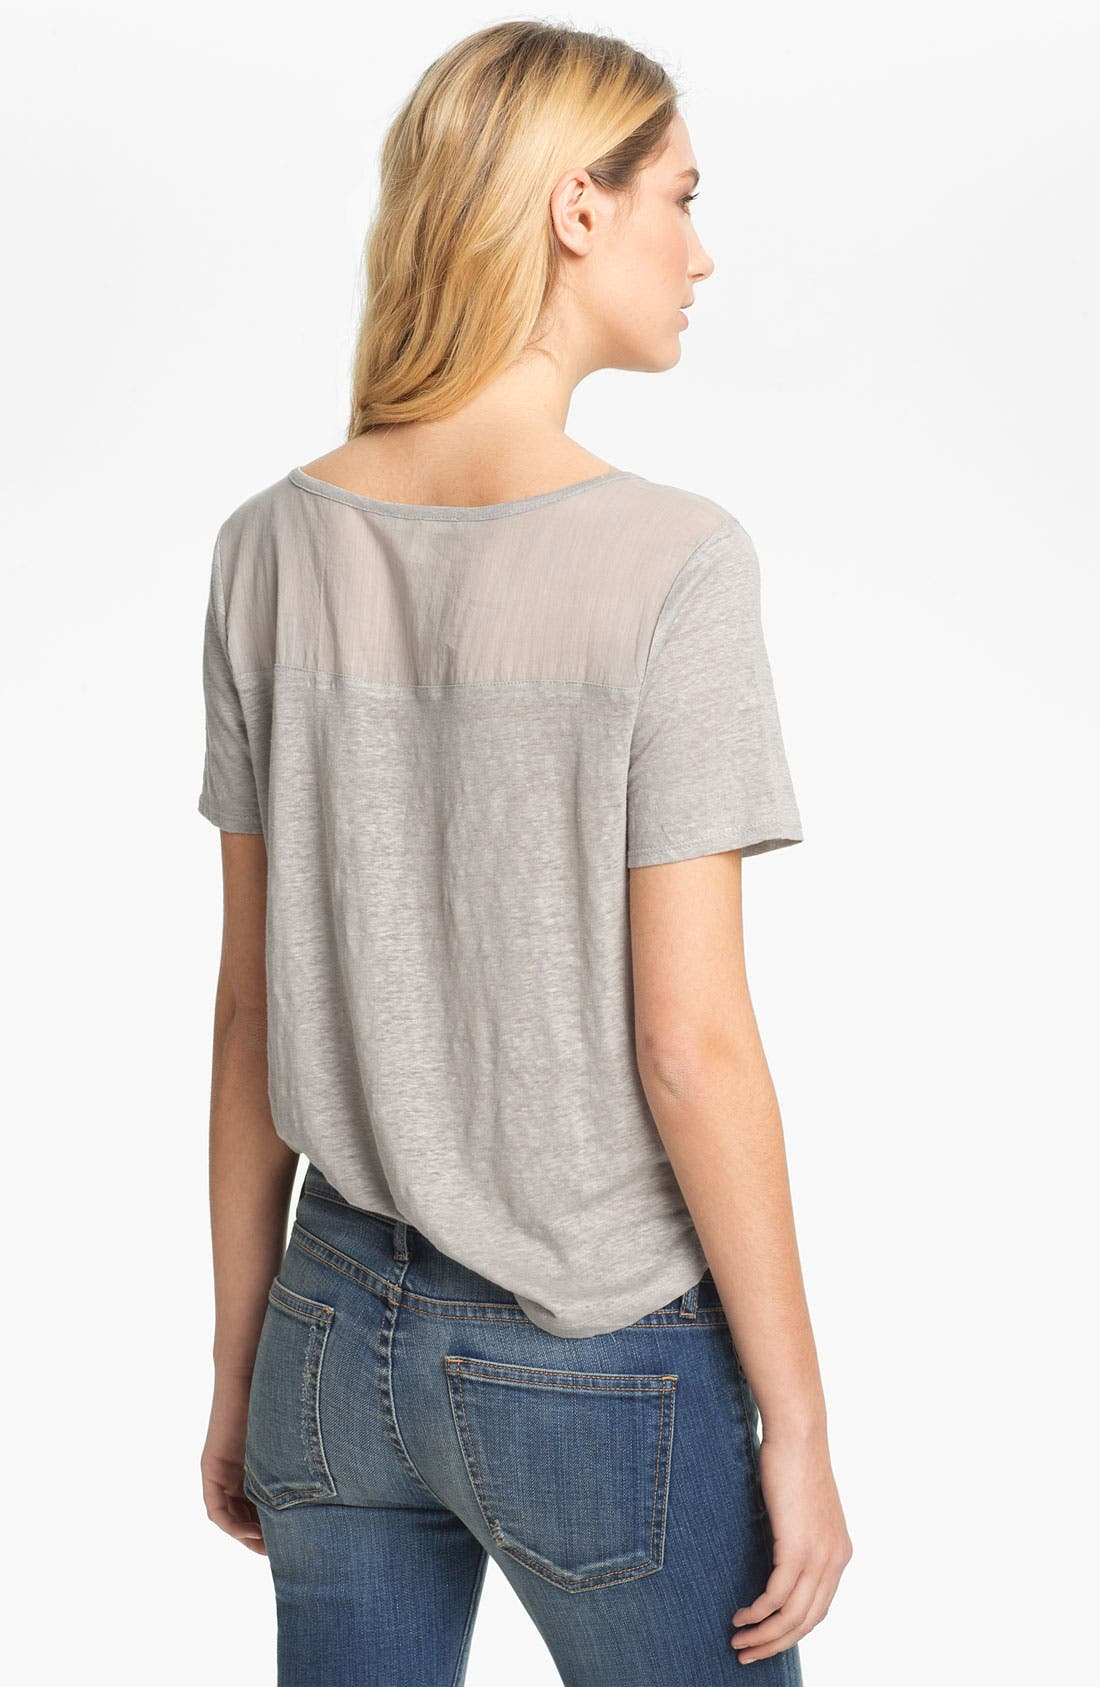 Alternate Image 2  - Soft Joie 'Rhett' Sheer Yoke Pocket Tee